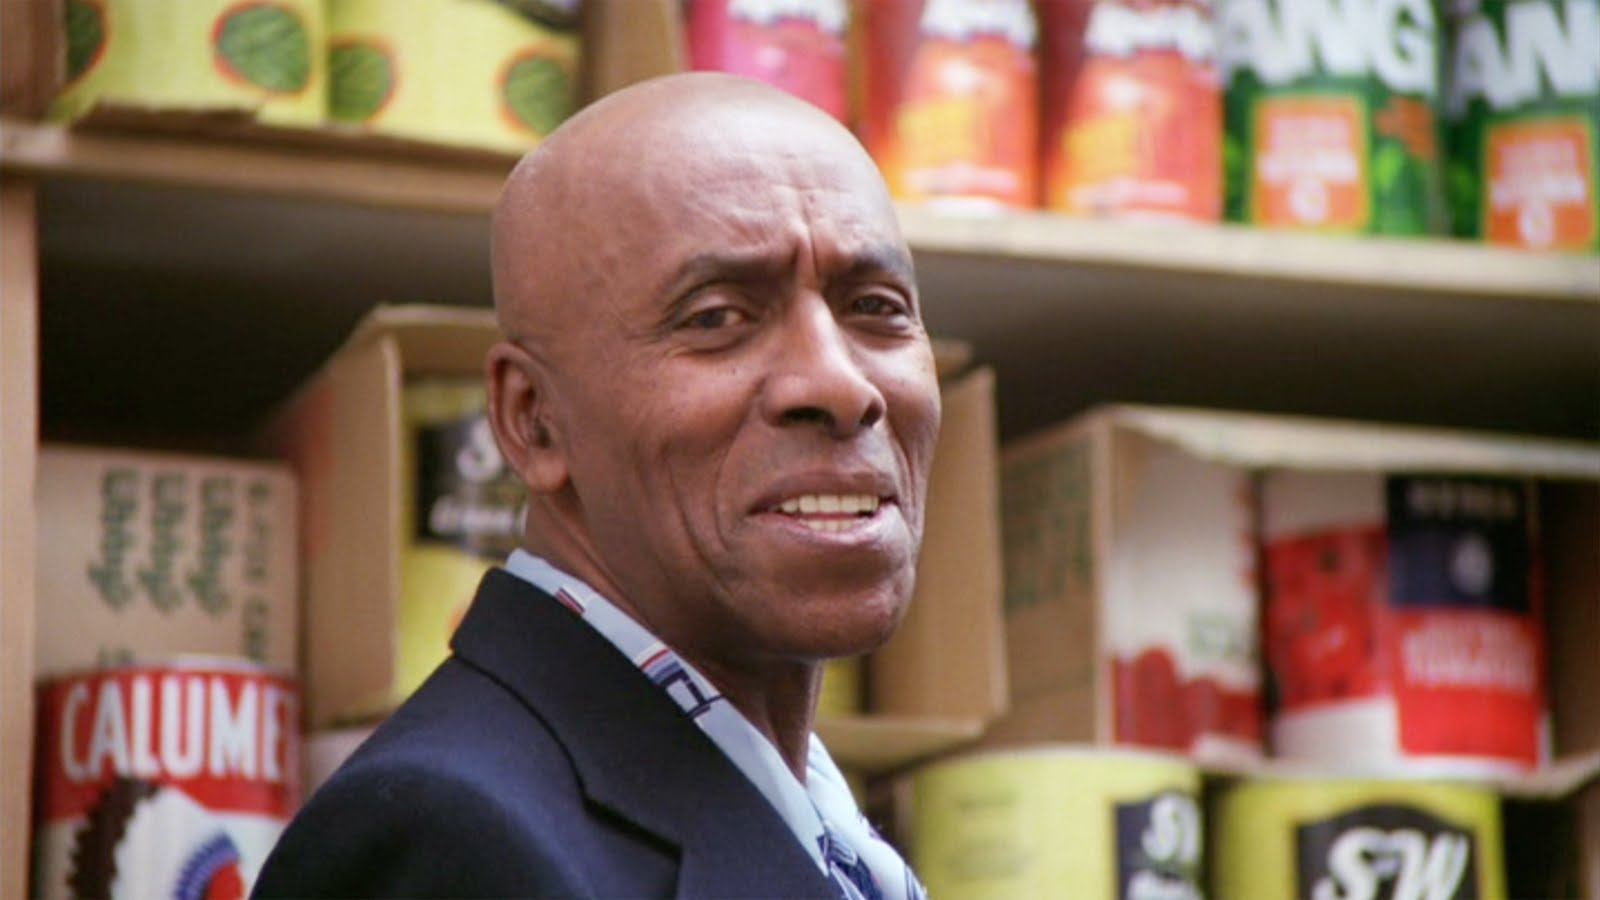 1600x900 - Scatman Crothers Wallpapers 13